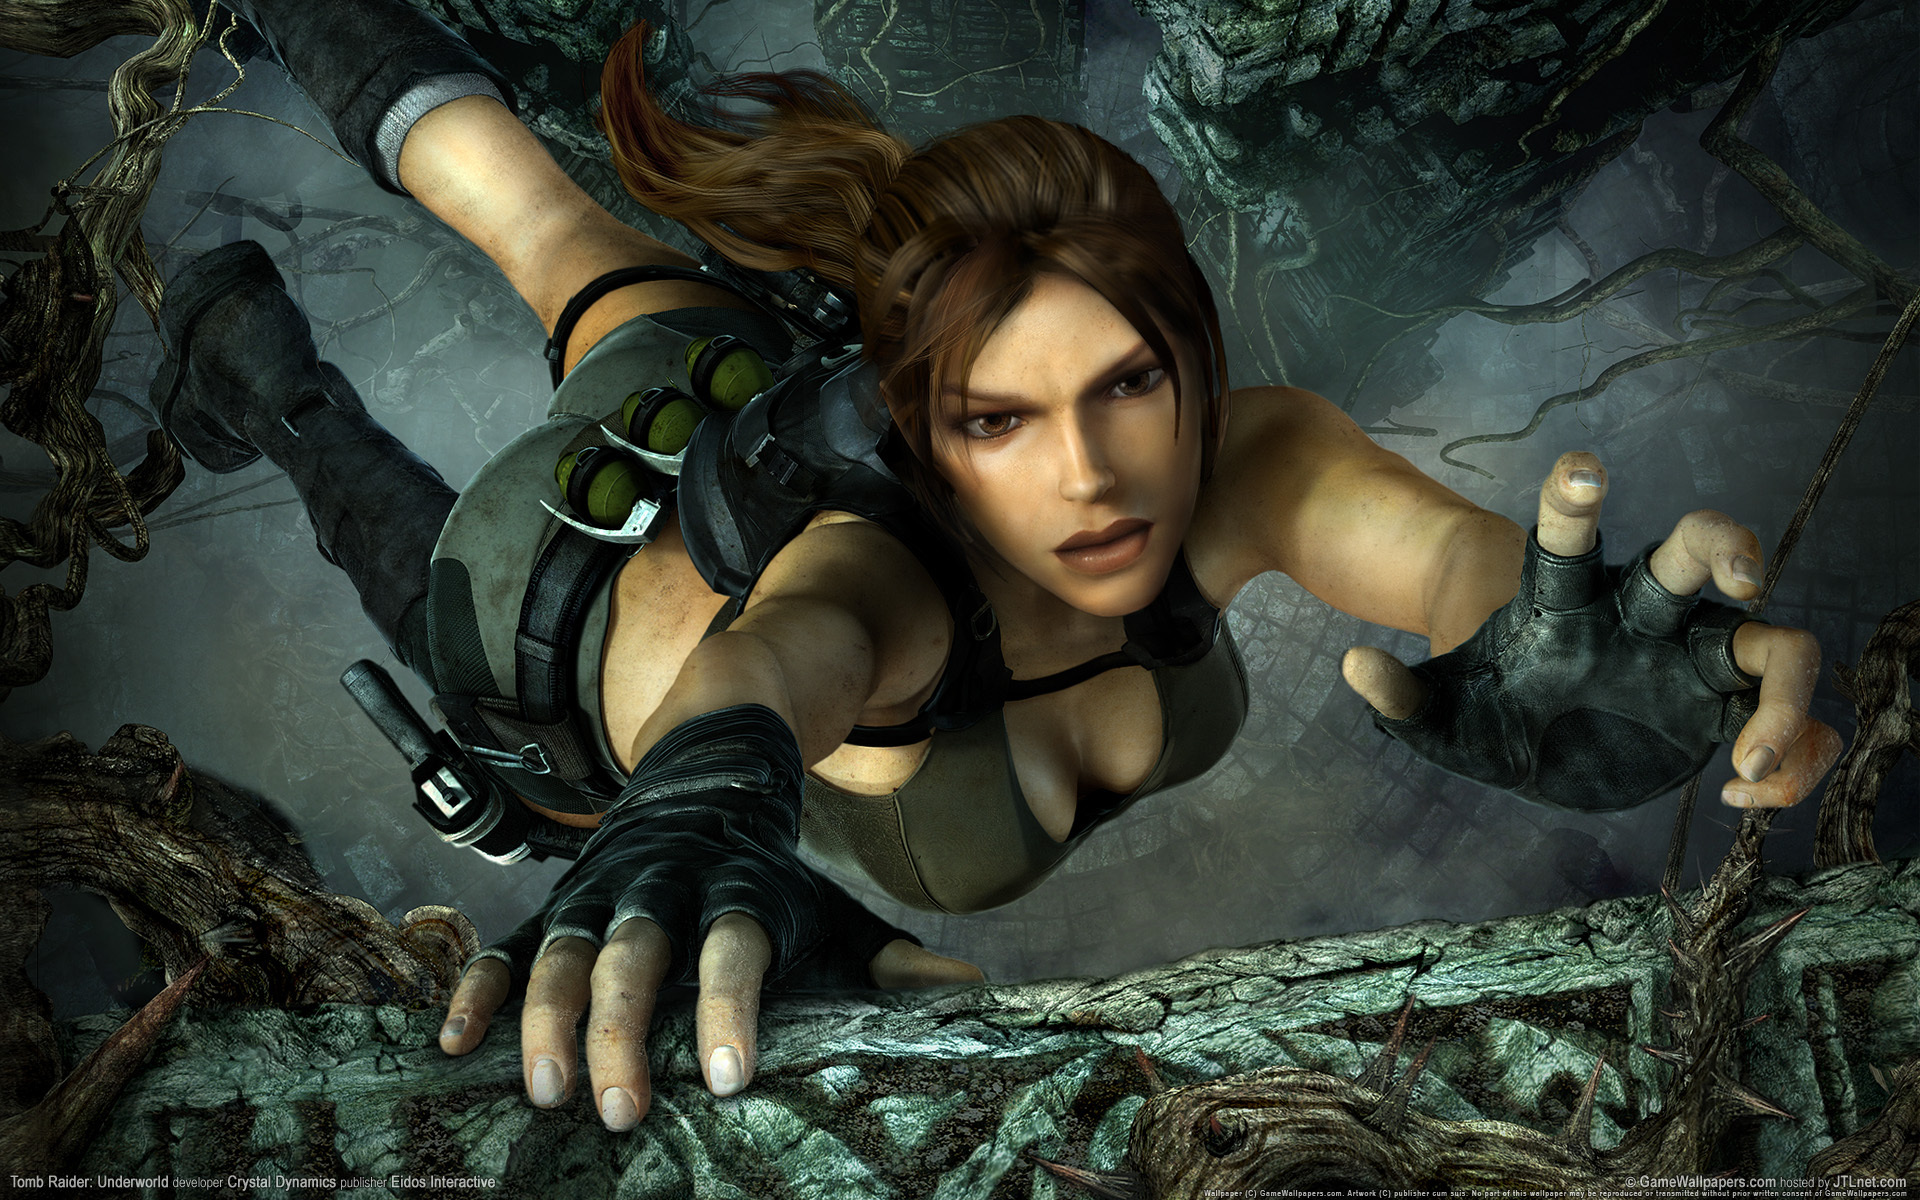 Lara Croft Tomb Raider Underworld 410